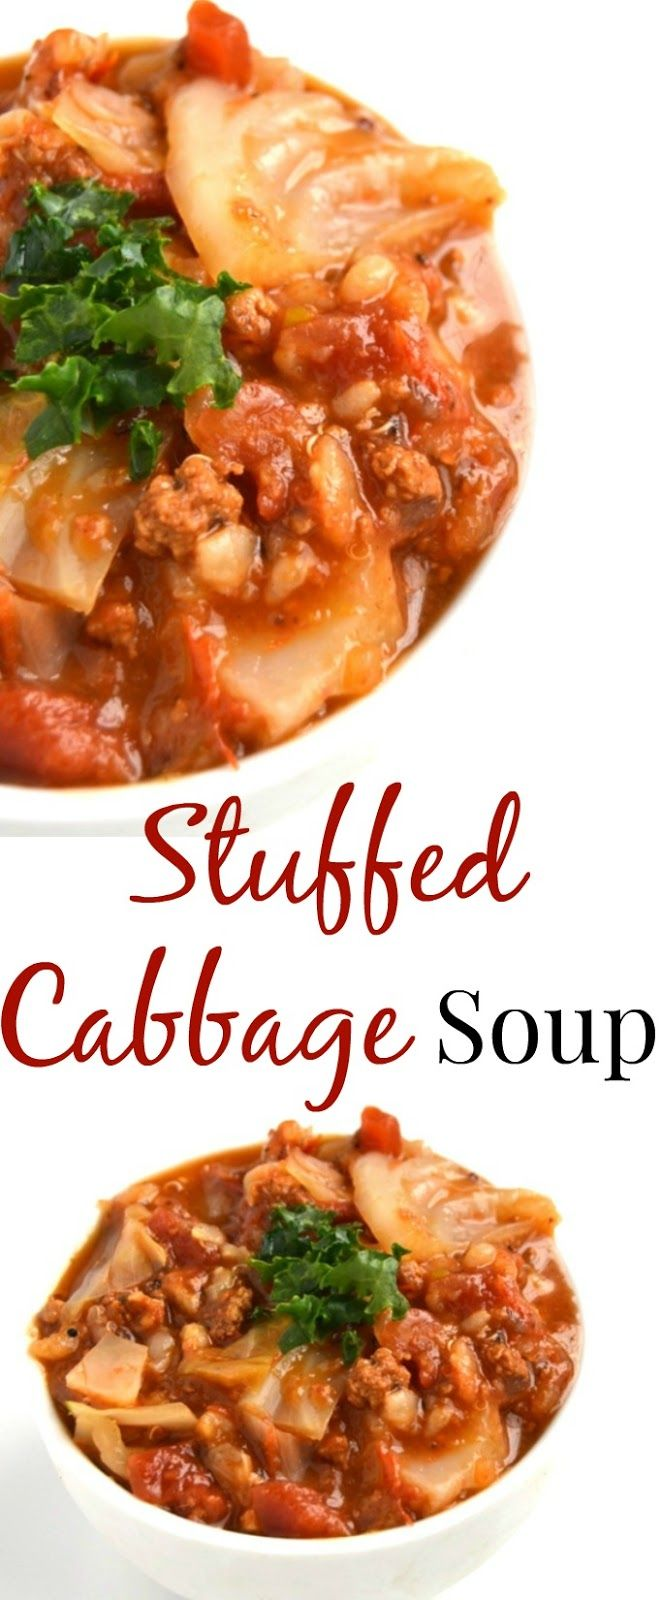 how to make stuffed cabbage youtube